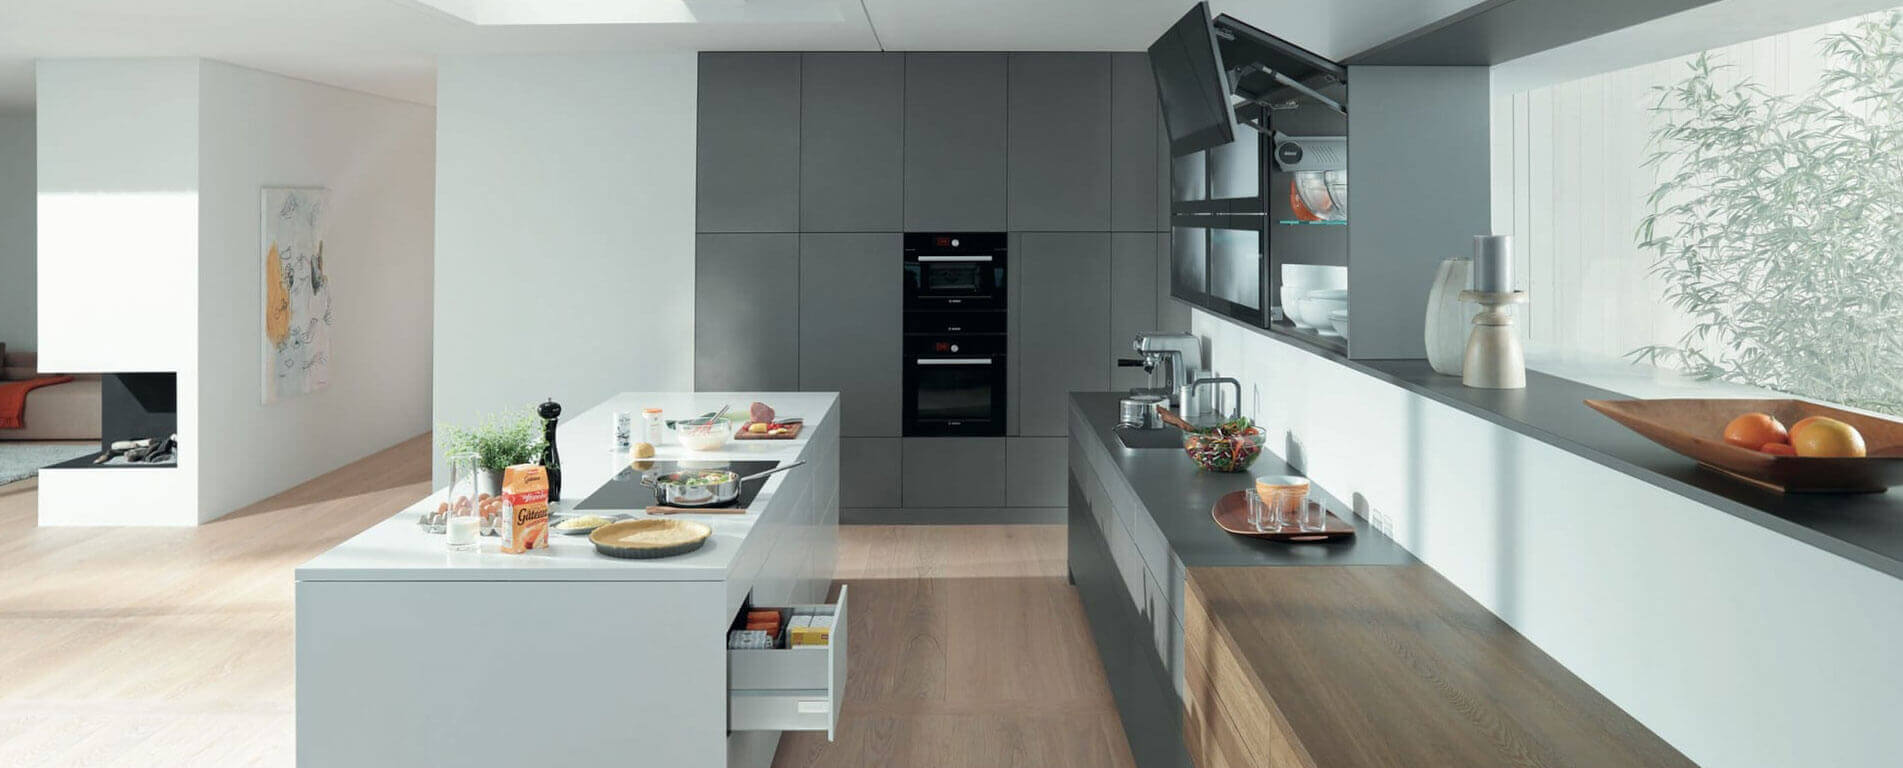 The Necessity of Modular Kitchen Furniture in a Contemporary Home